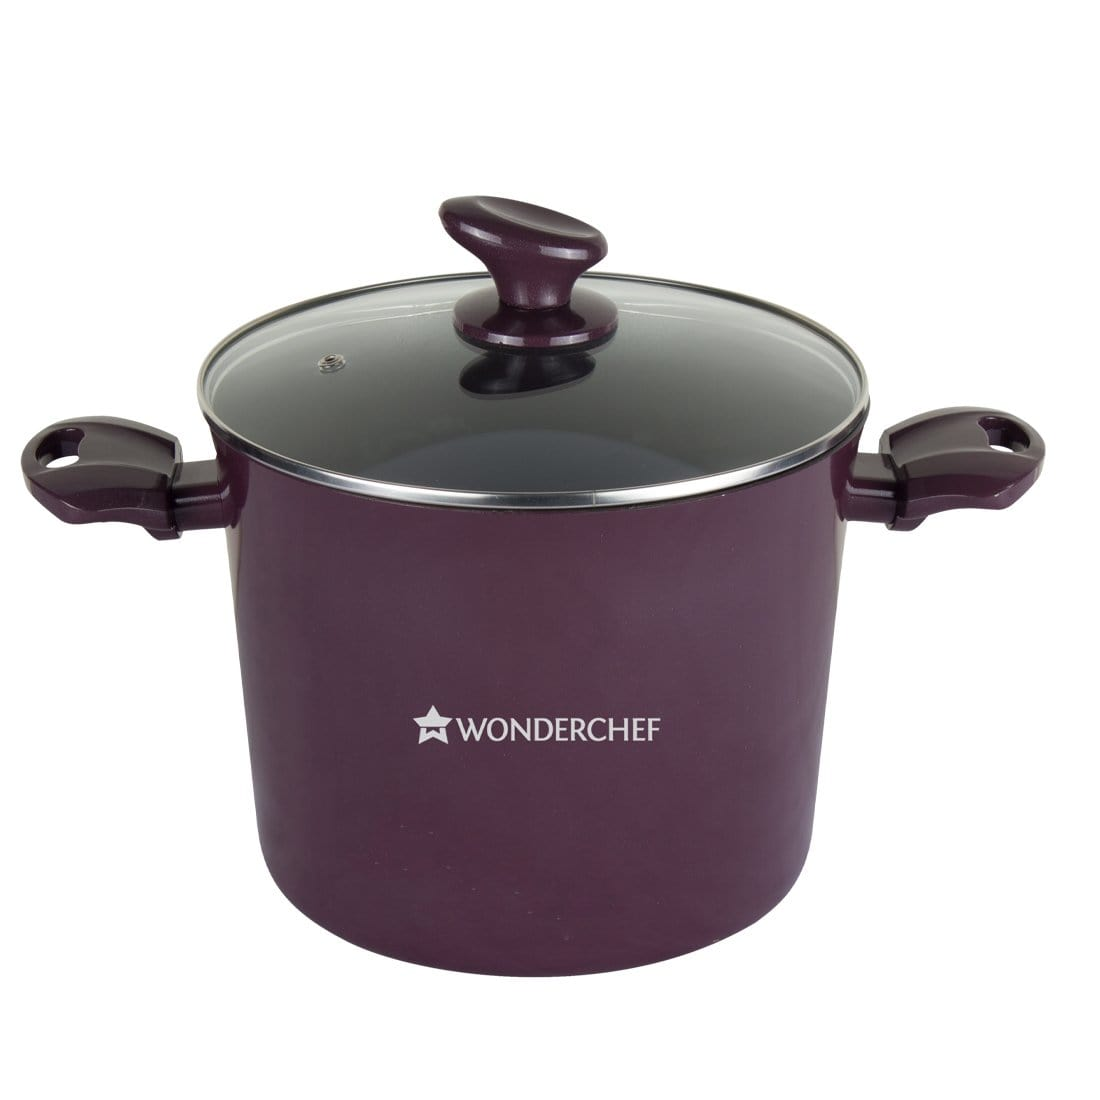 Cookware Wonderchef 8904214704193